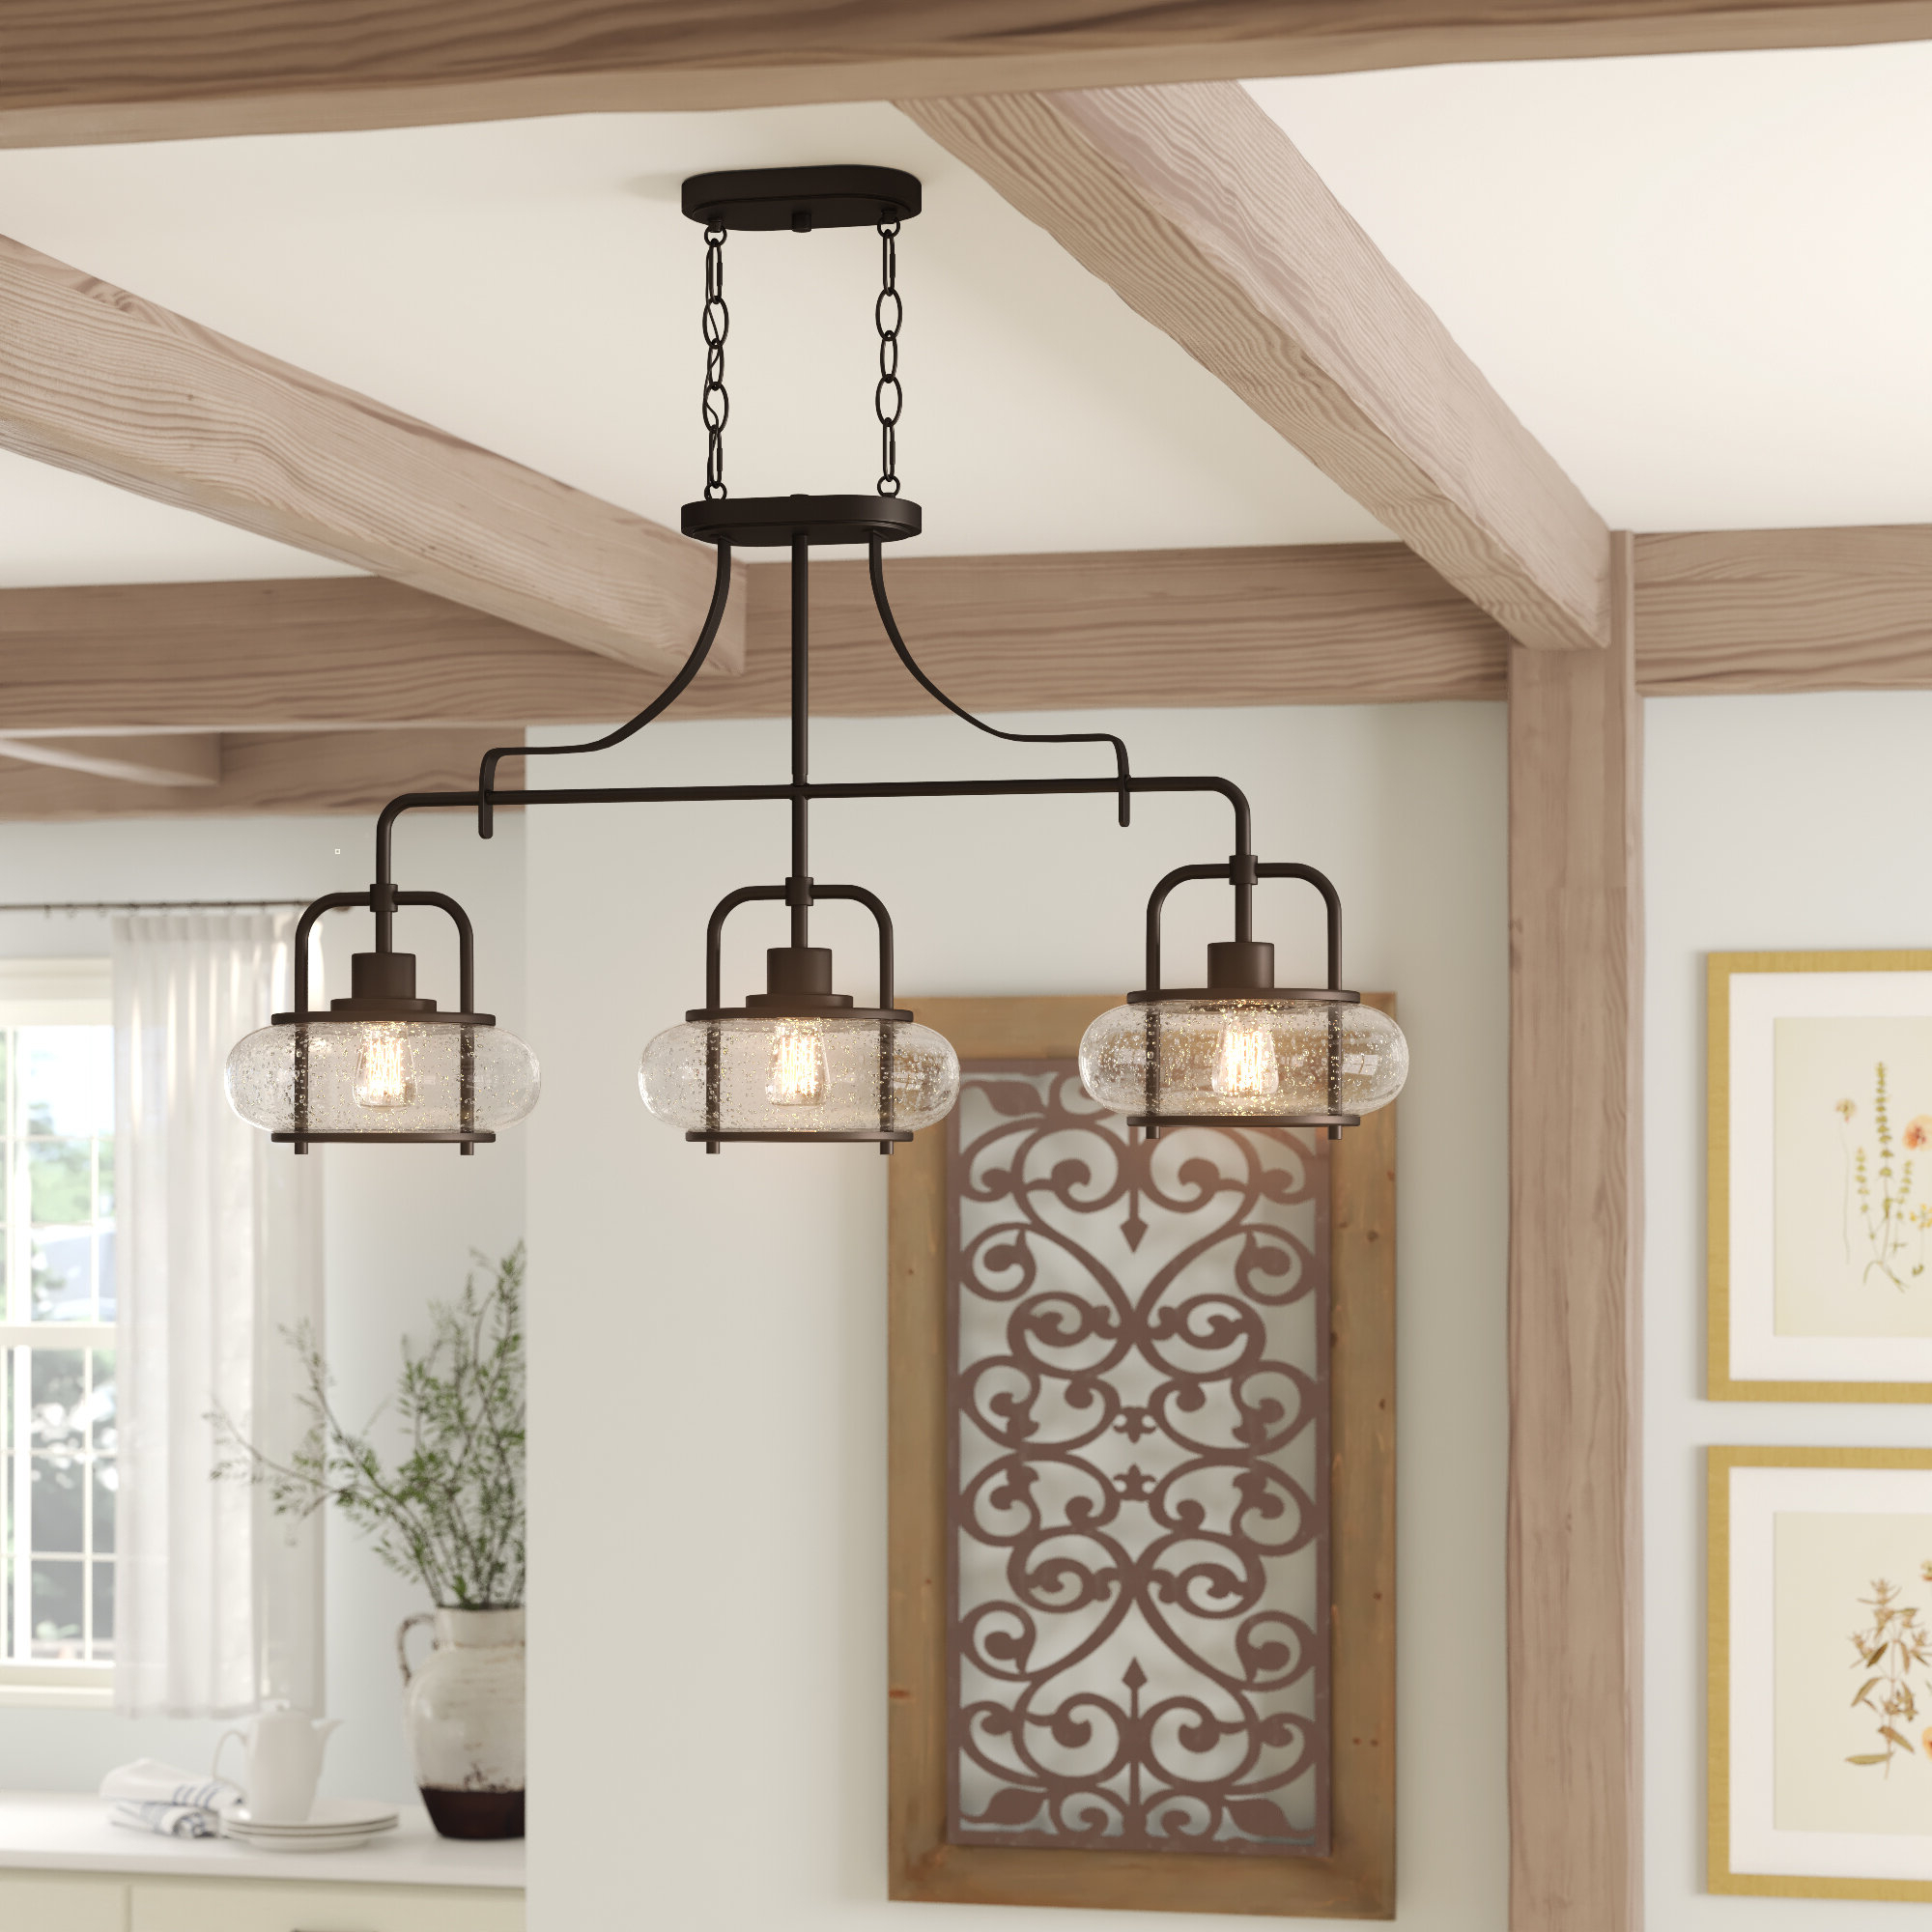 Farmhouse & Rustic Damp Location Kitchen Island Pendants In Most Popular Smithville 4 Light Kitchen Island Pendants (View 9 of 25)